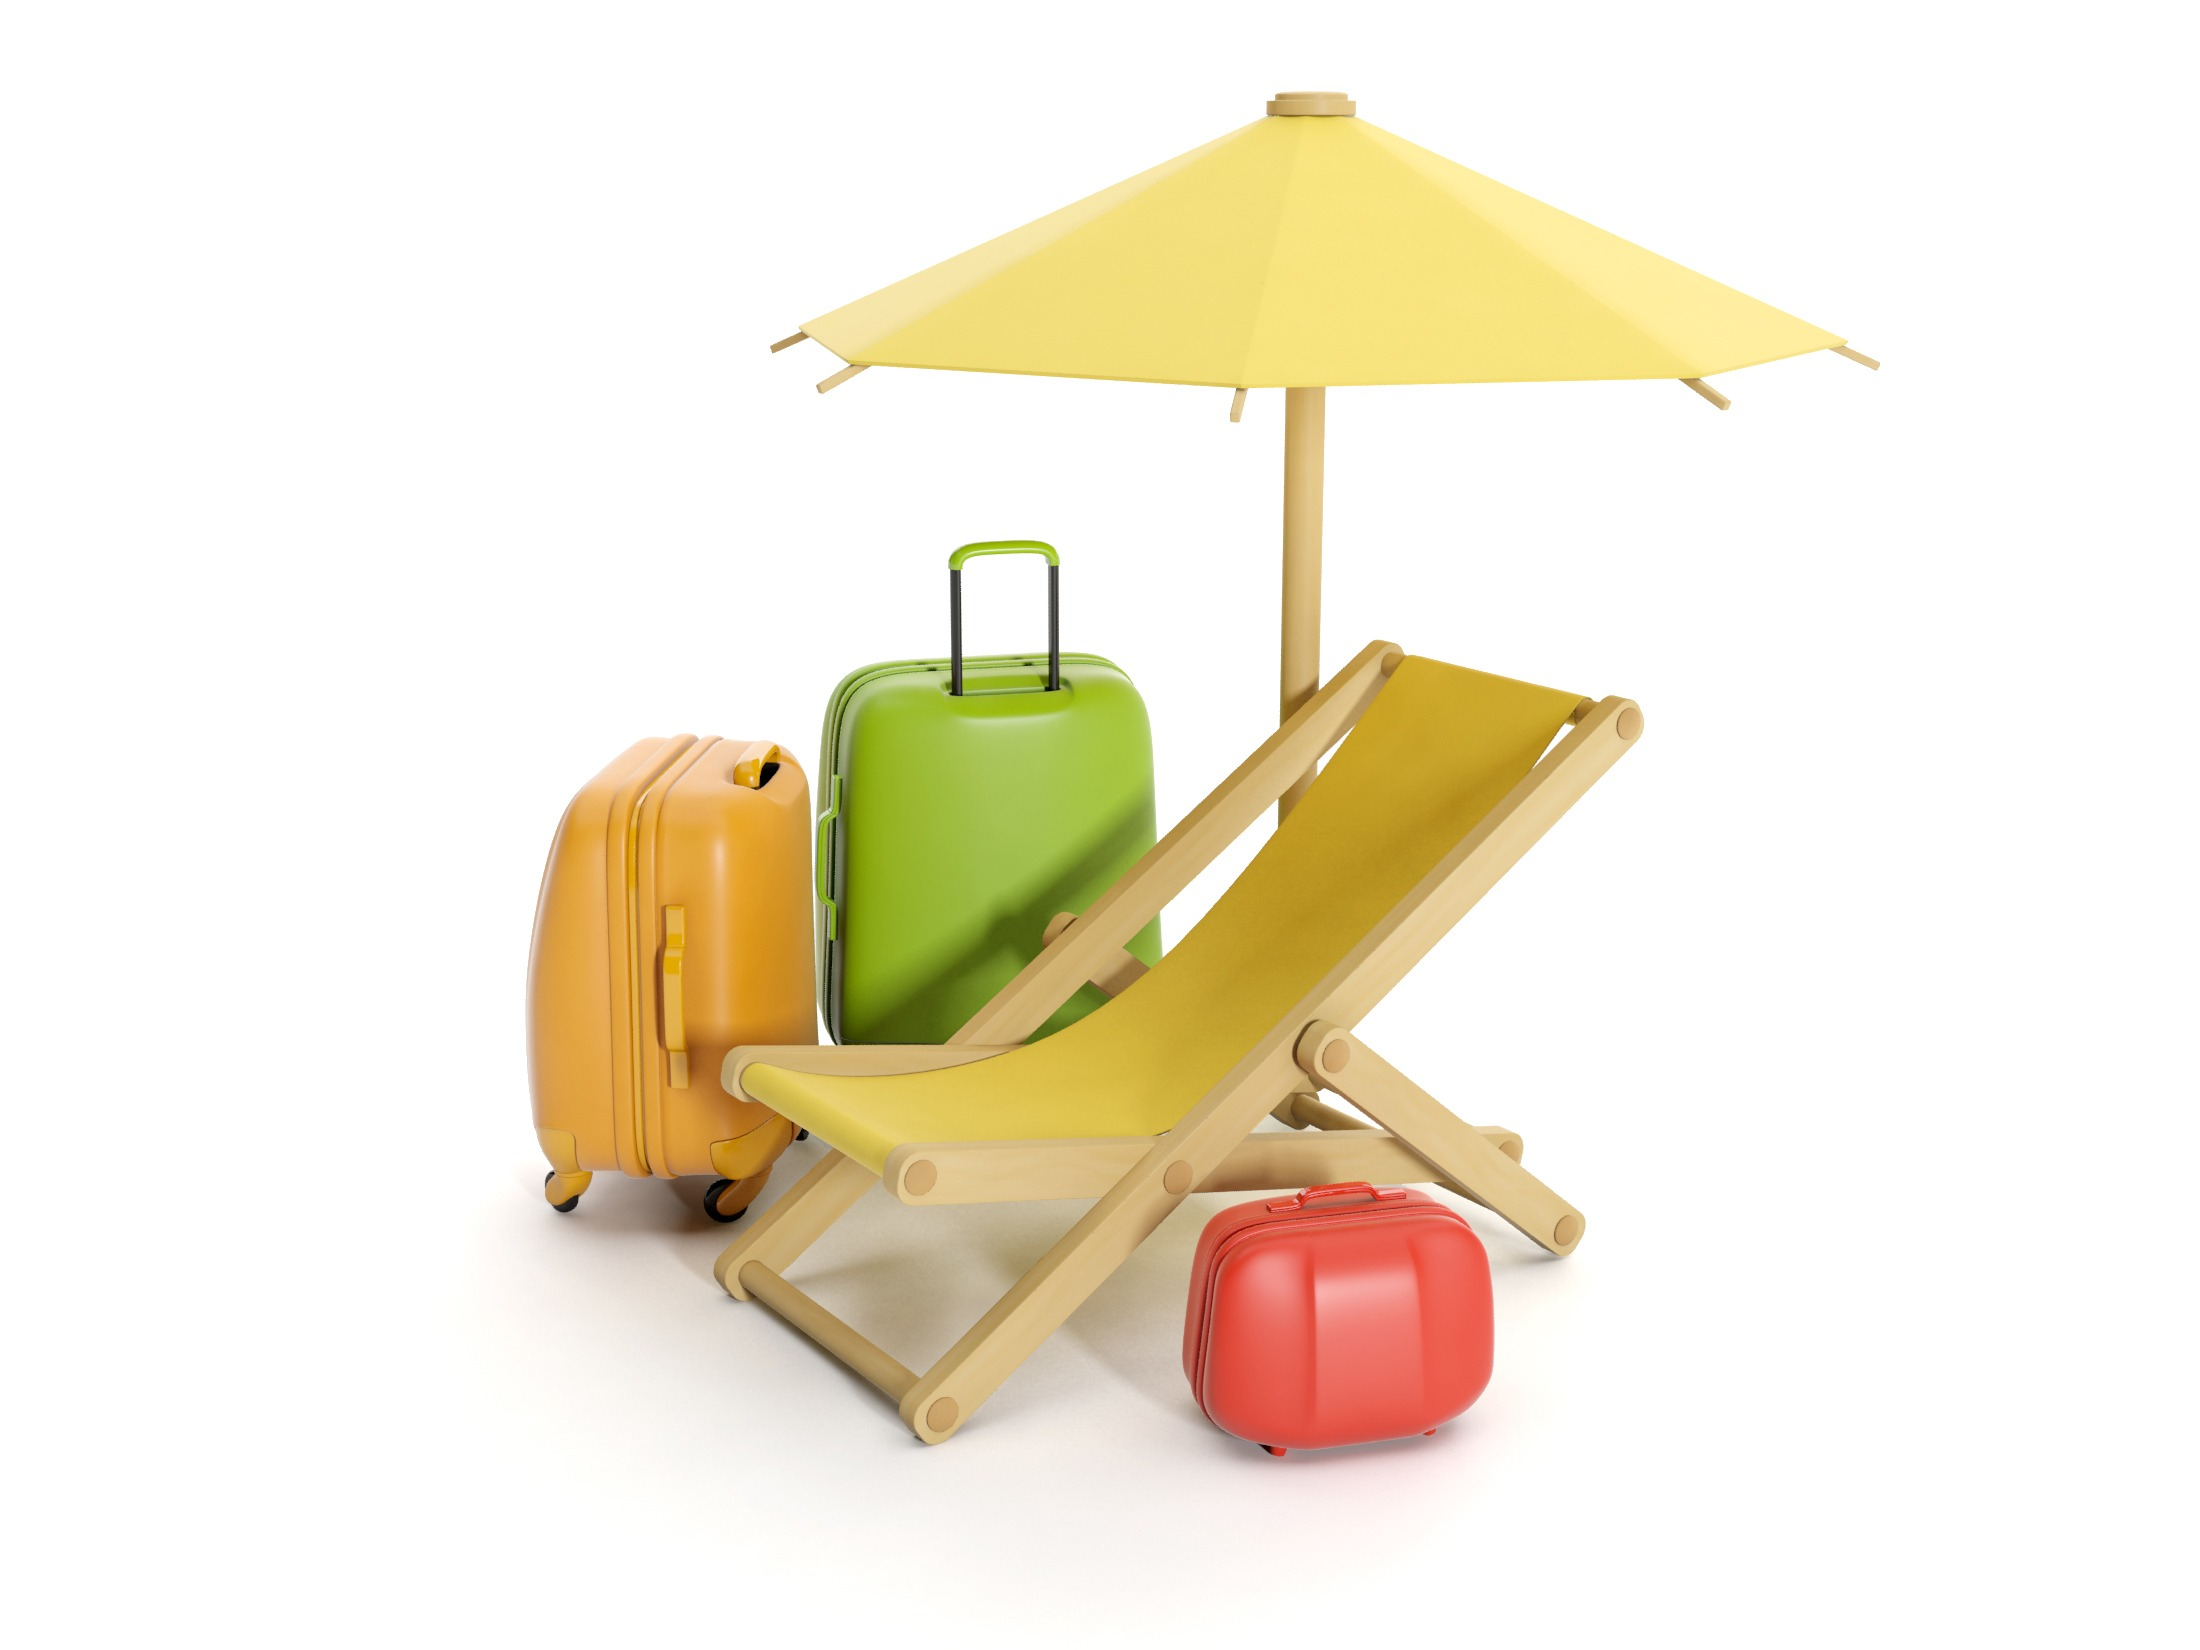 3d illustration: Take vacation, holiday items and suitcases